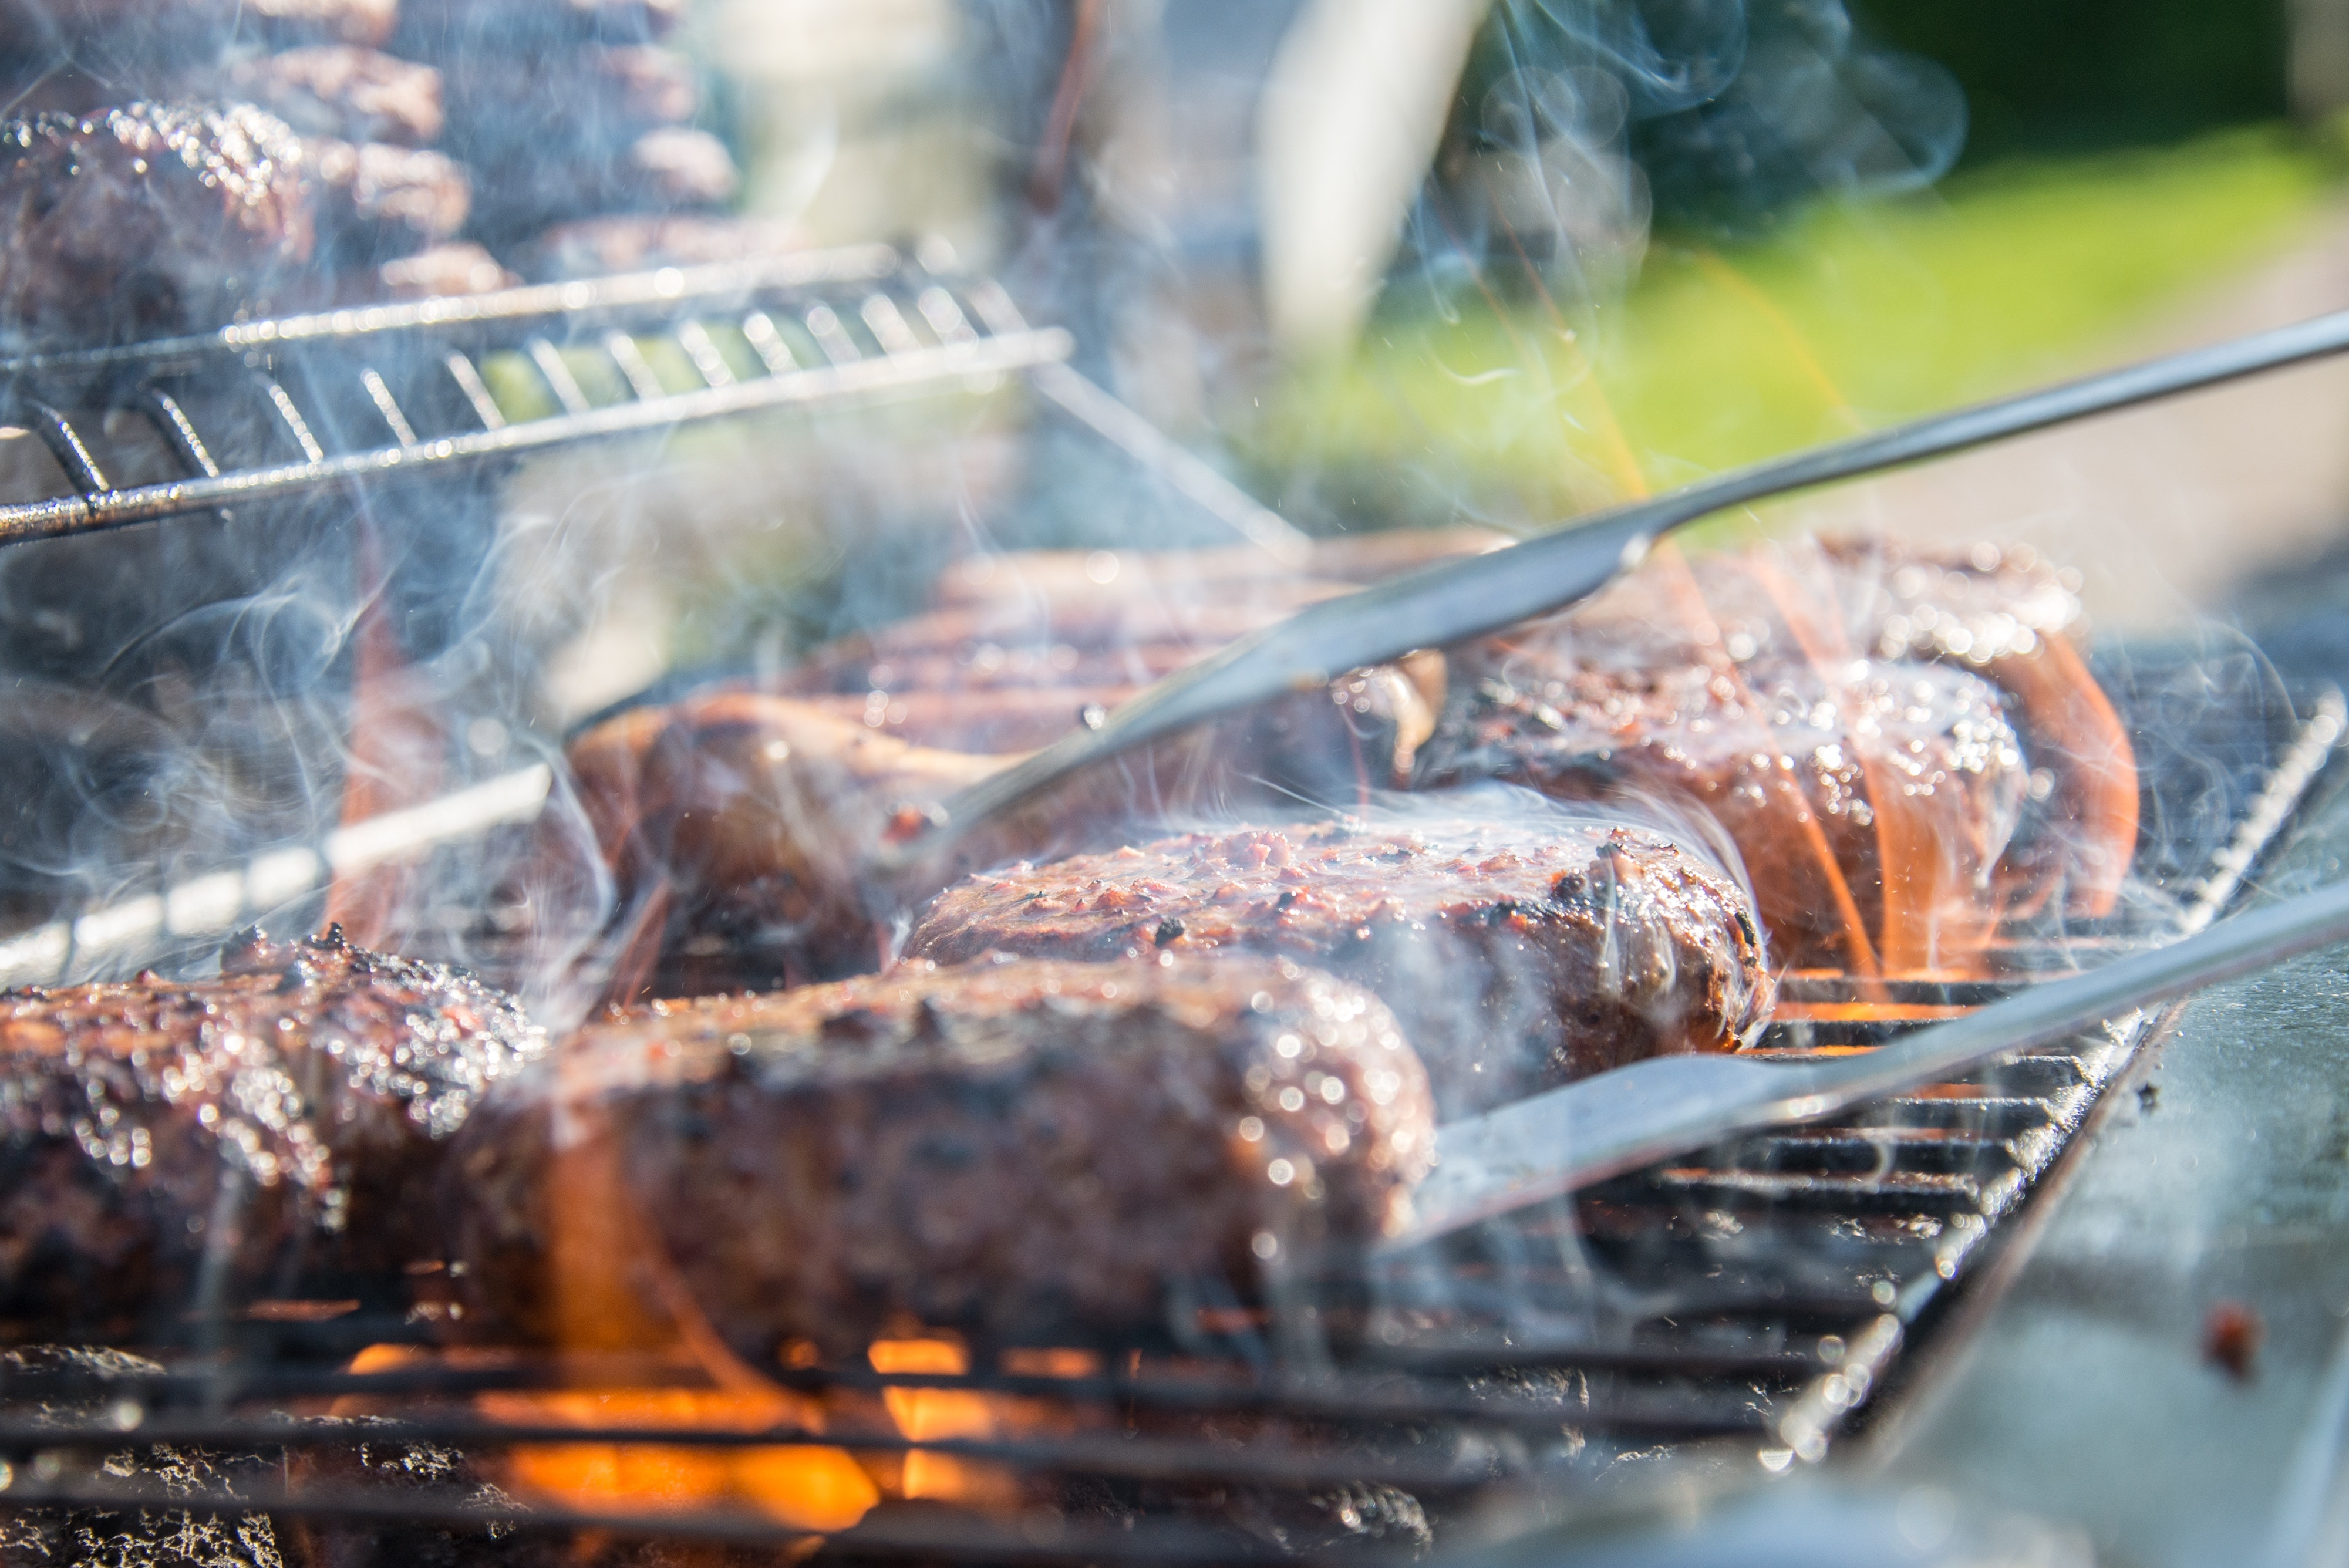 tongs on meet over flame in grill